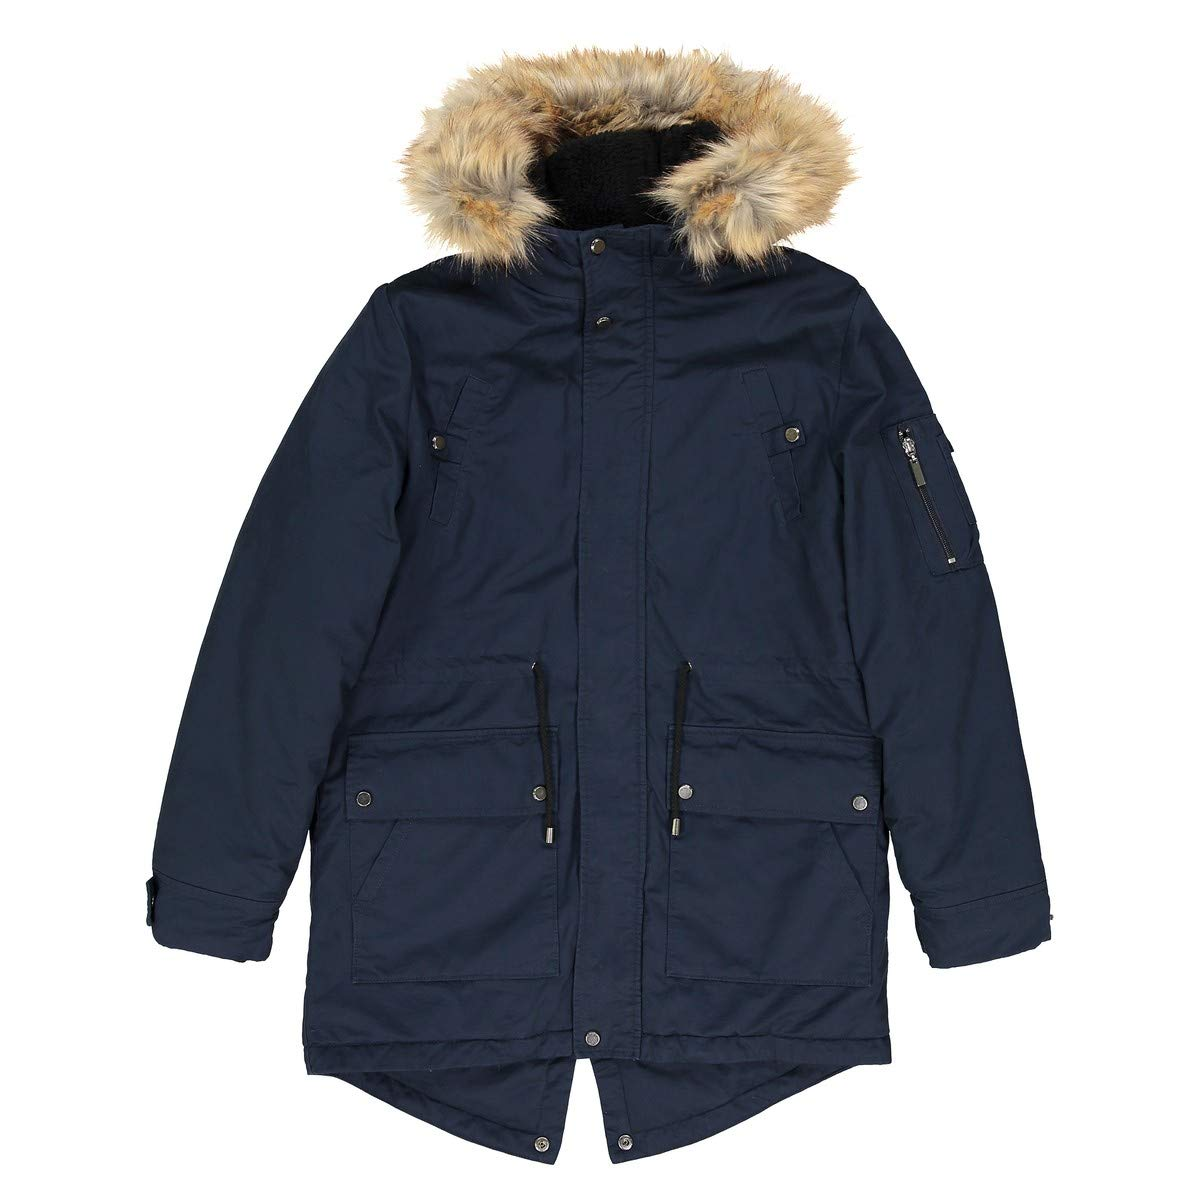 La Redoute Collections Big Boys Warm Parka, 10-16 Years Blue Size 16 Years - 68 in. by La Redoute (Image #4)